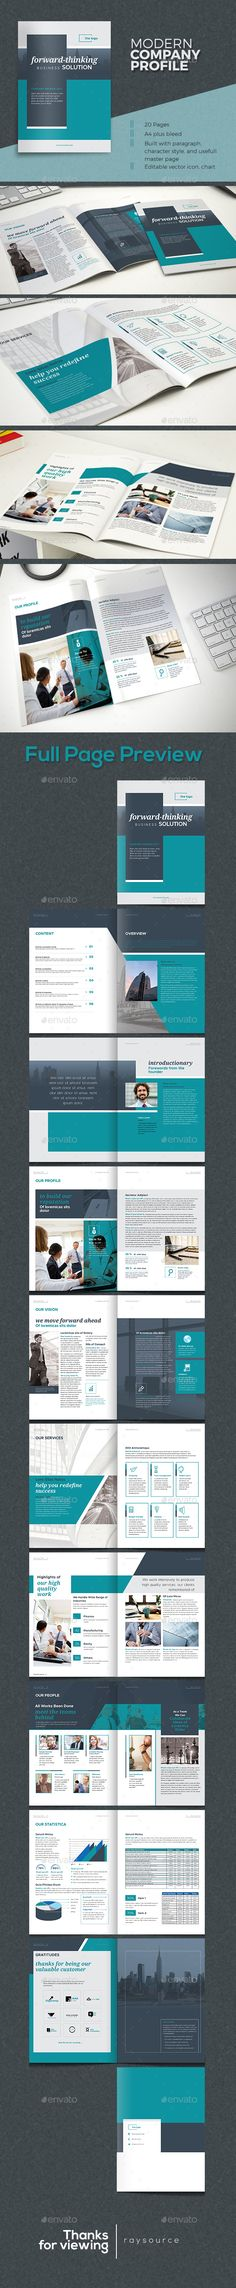 Catalog Template Vol   Best Corporate Brochure And Font Logo Ideas